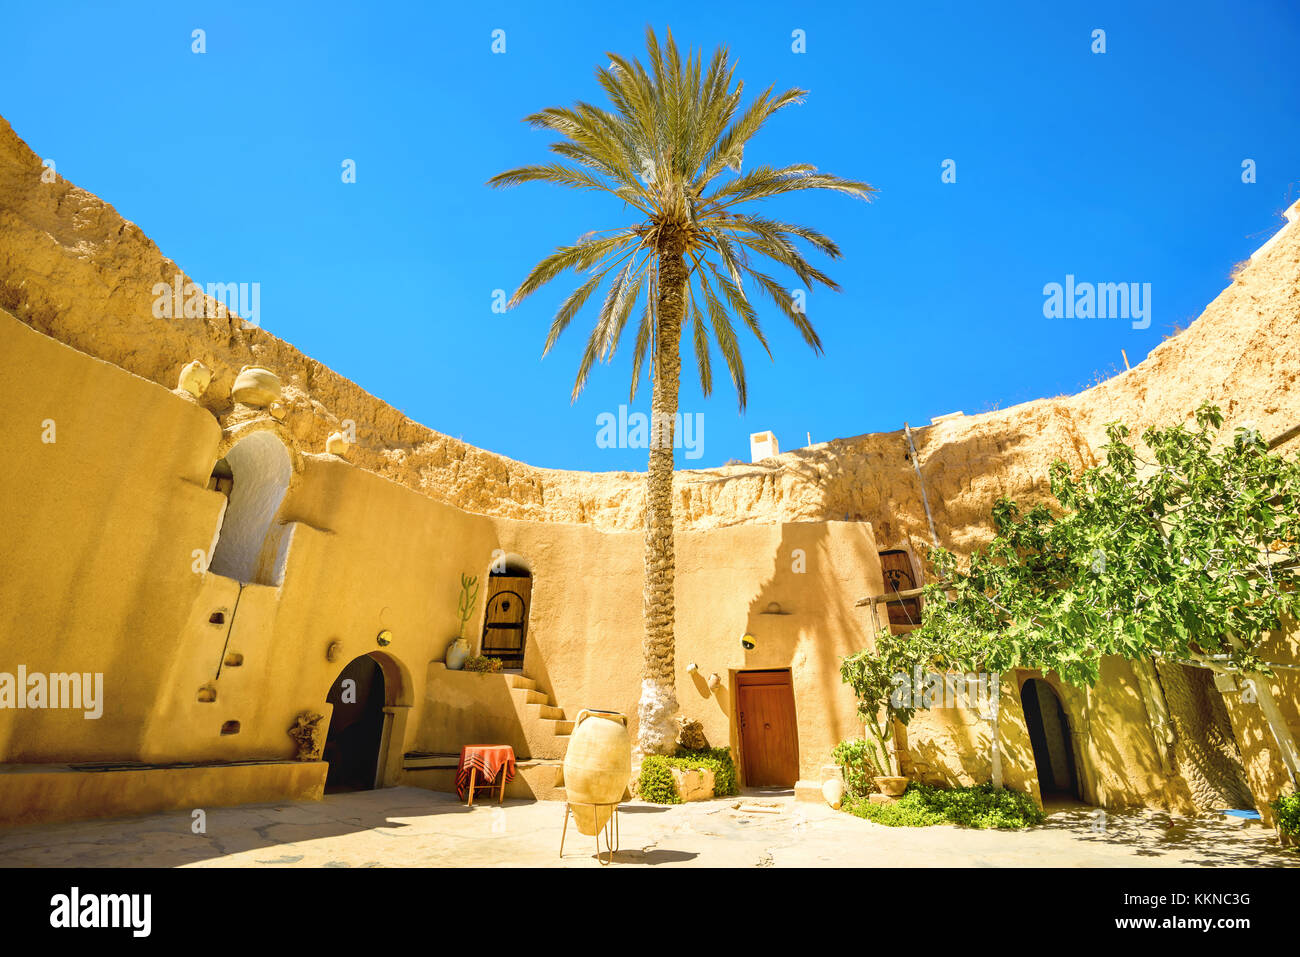 Courtyard of berber underground dwellings. Matmata, Tunisia, North Africa Stock Photo